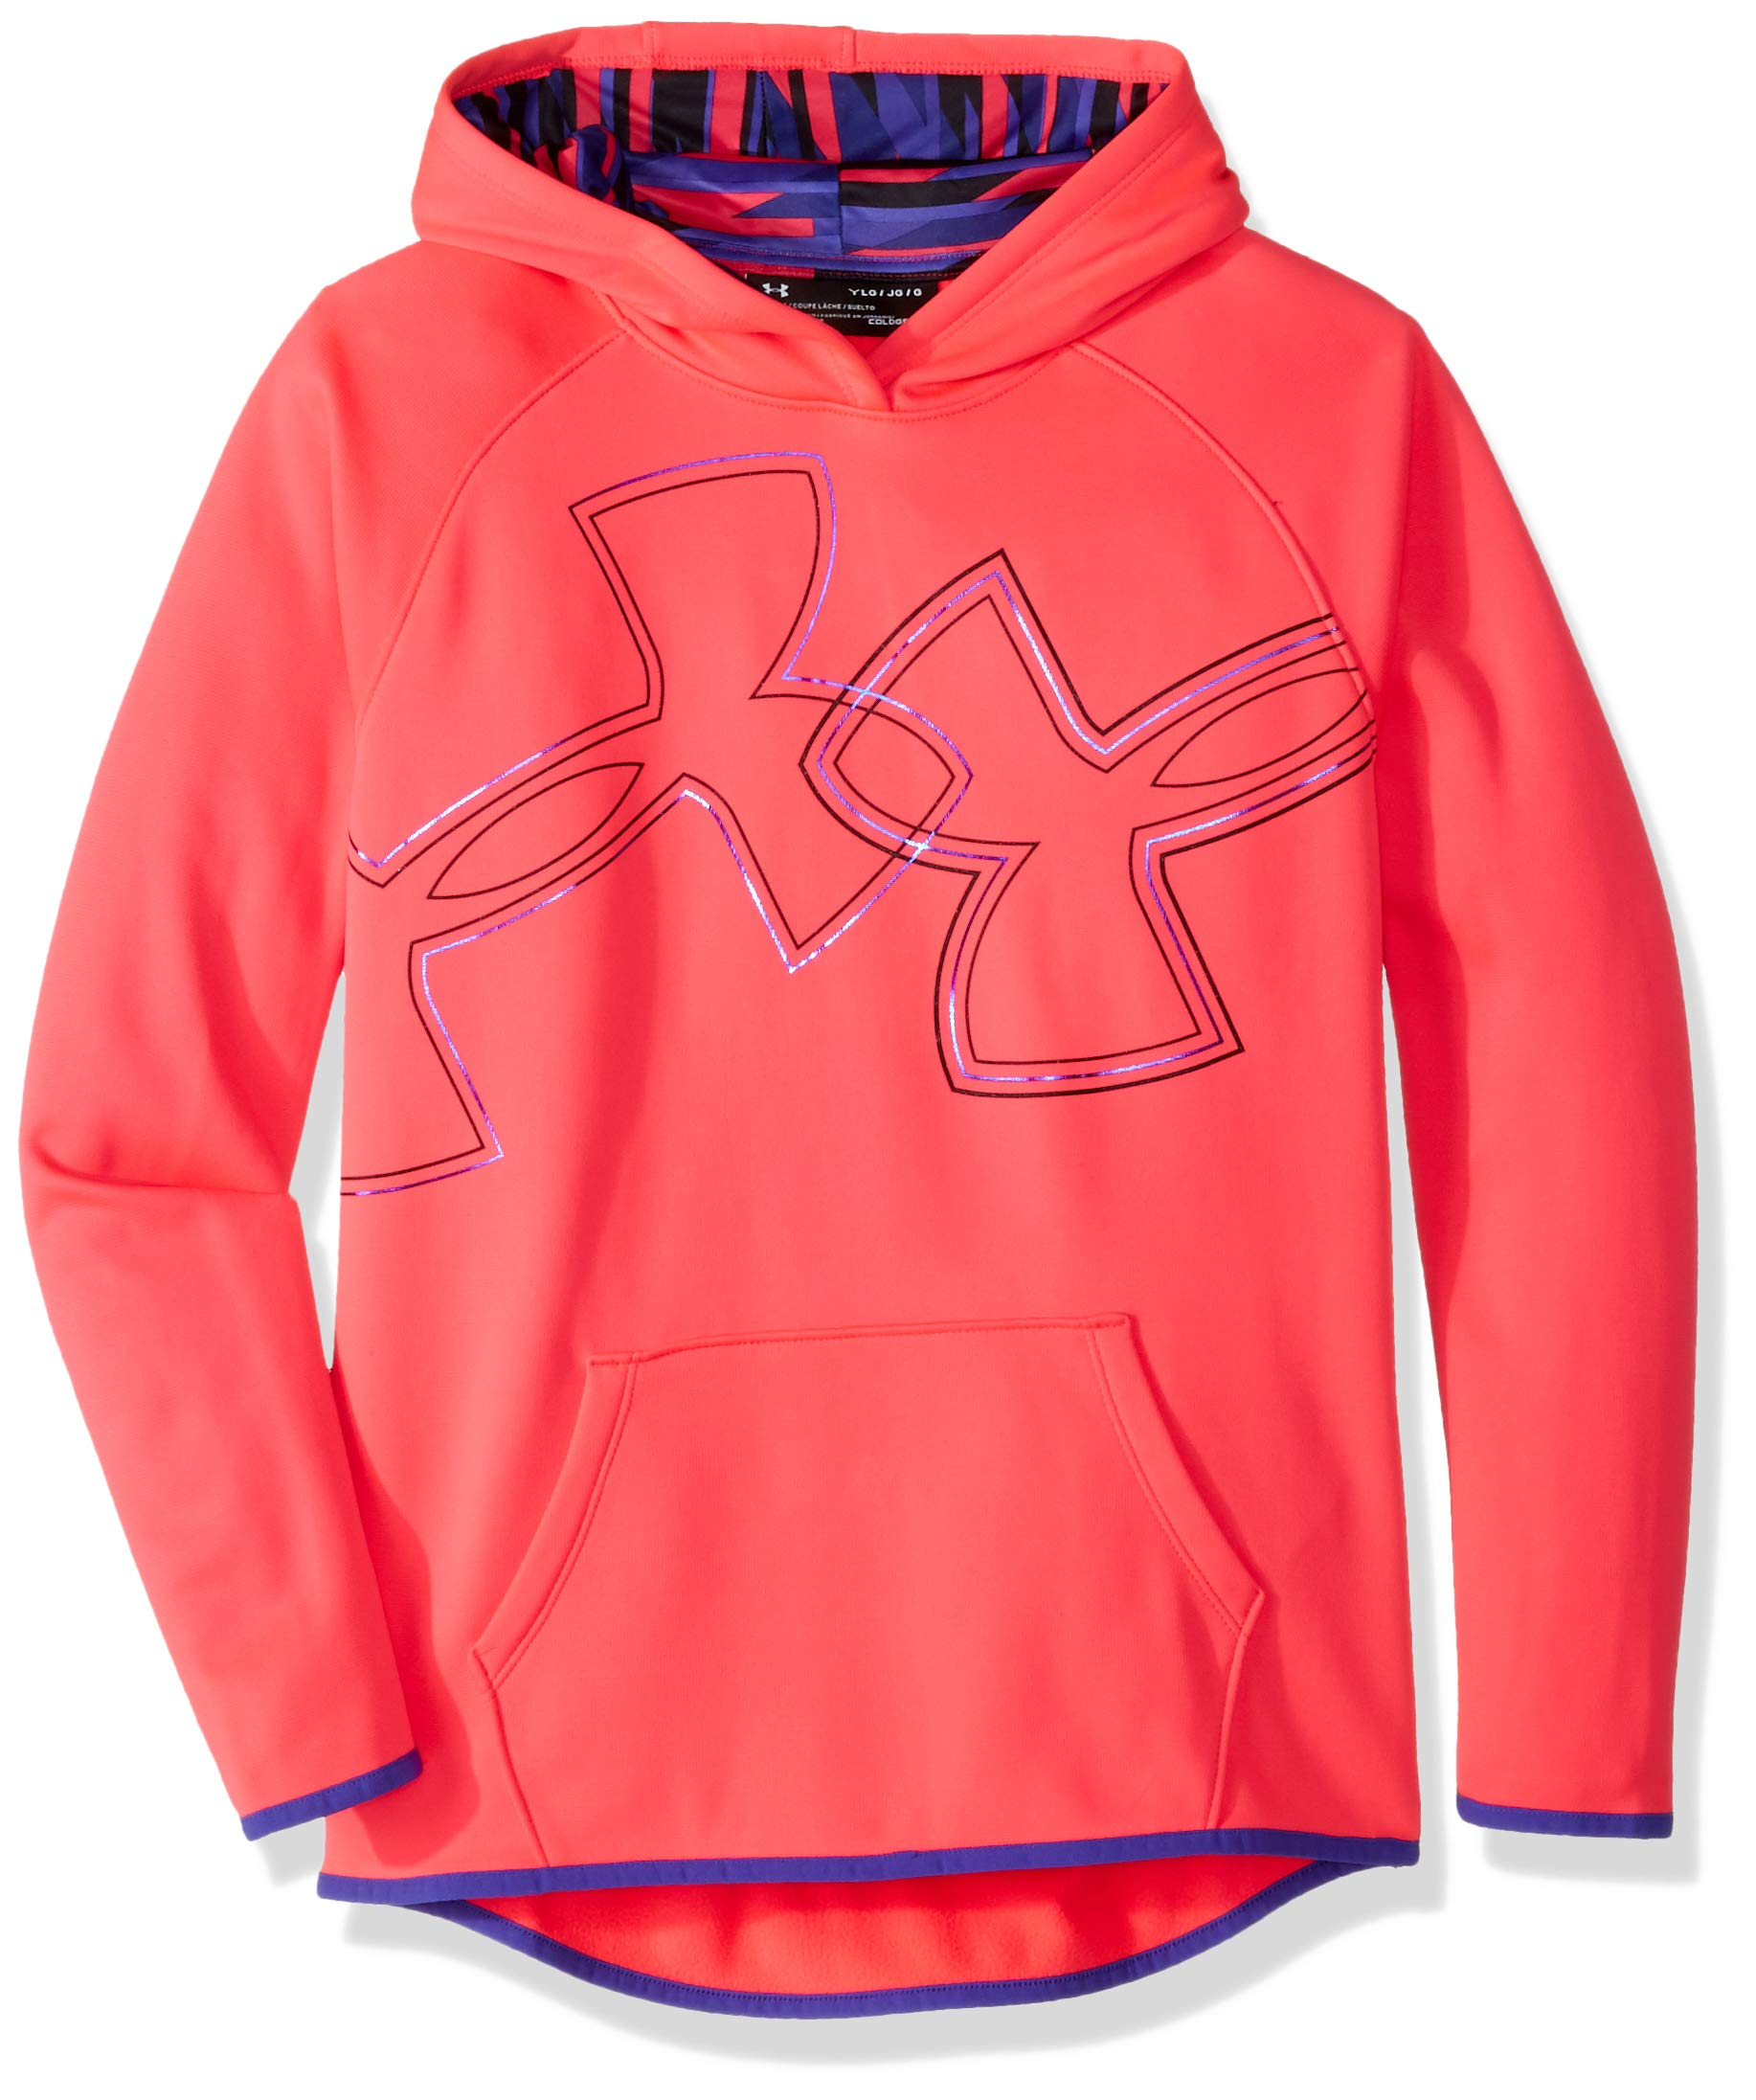 Under Armour Girls Armour Fleece Dual Logo Hoodie, Penta Pink (975)/Black, Youth X-Large